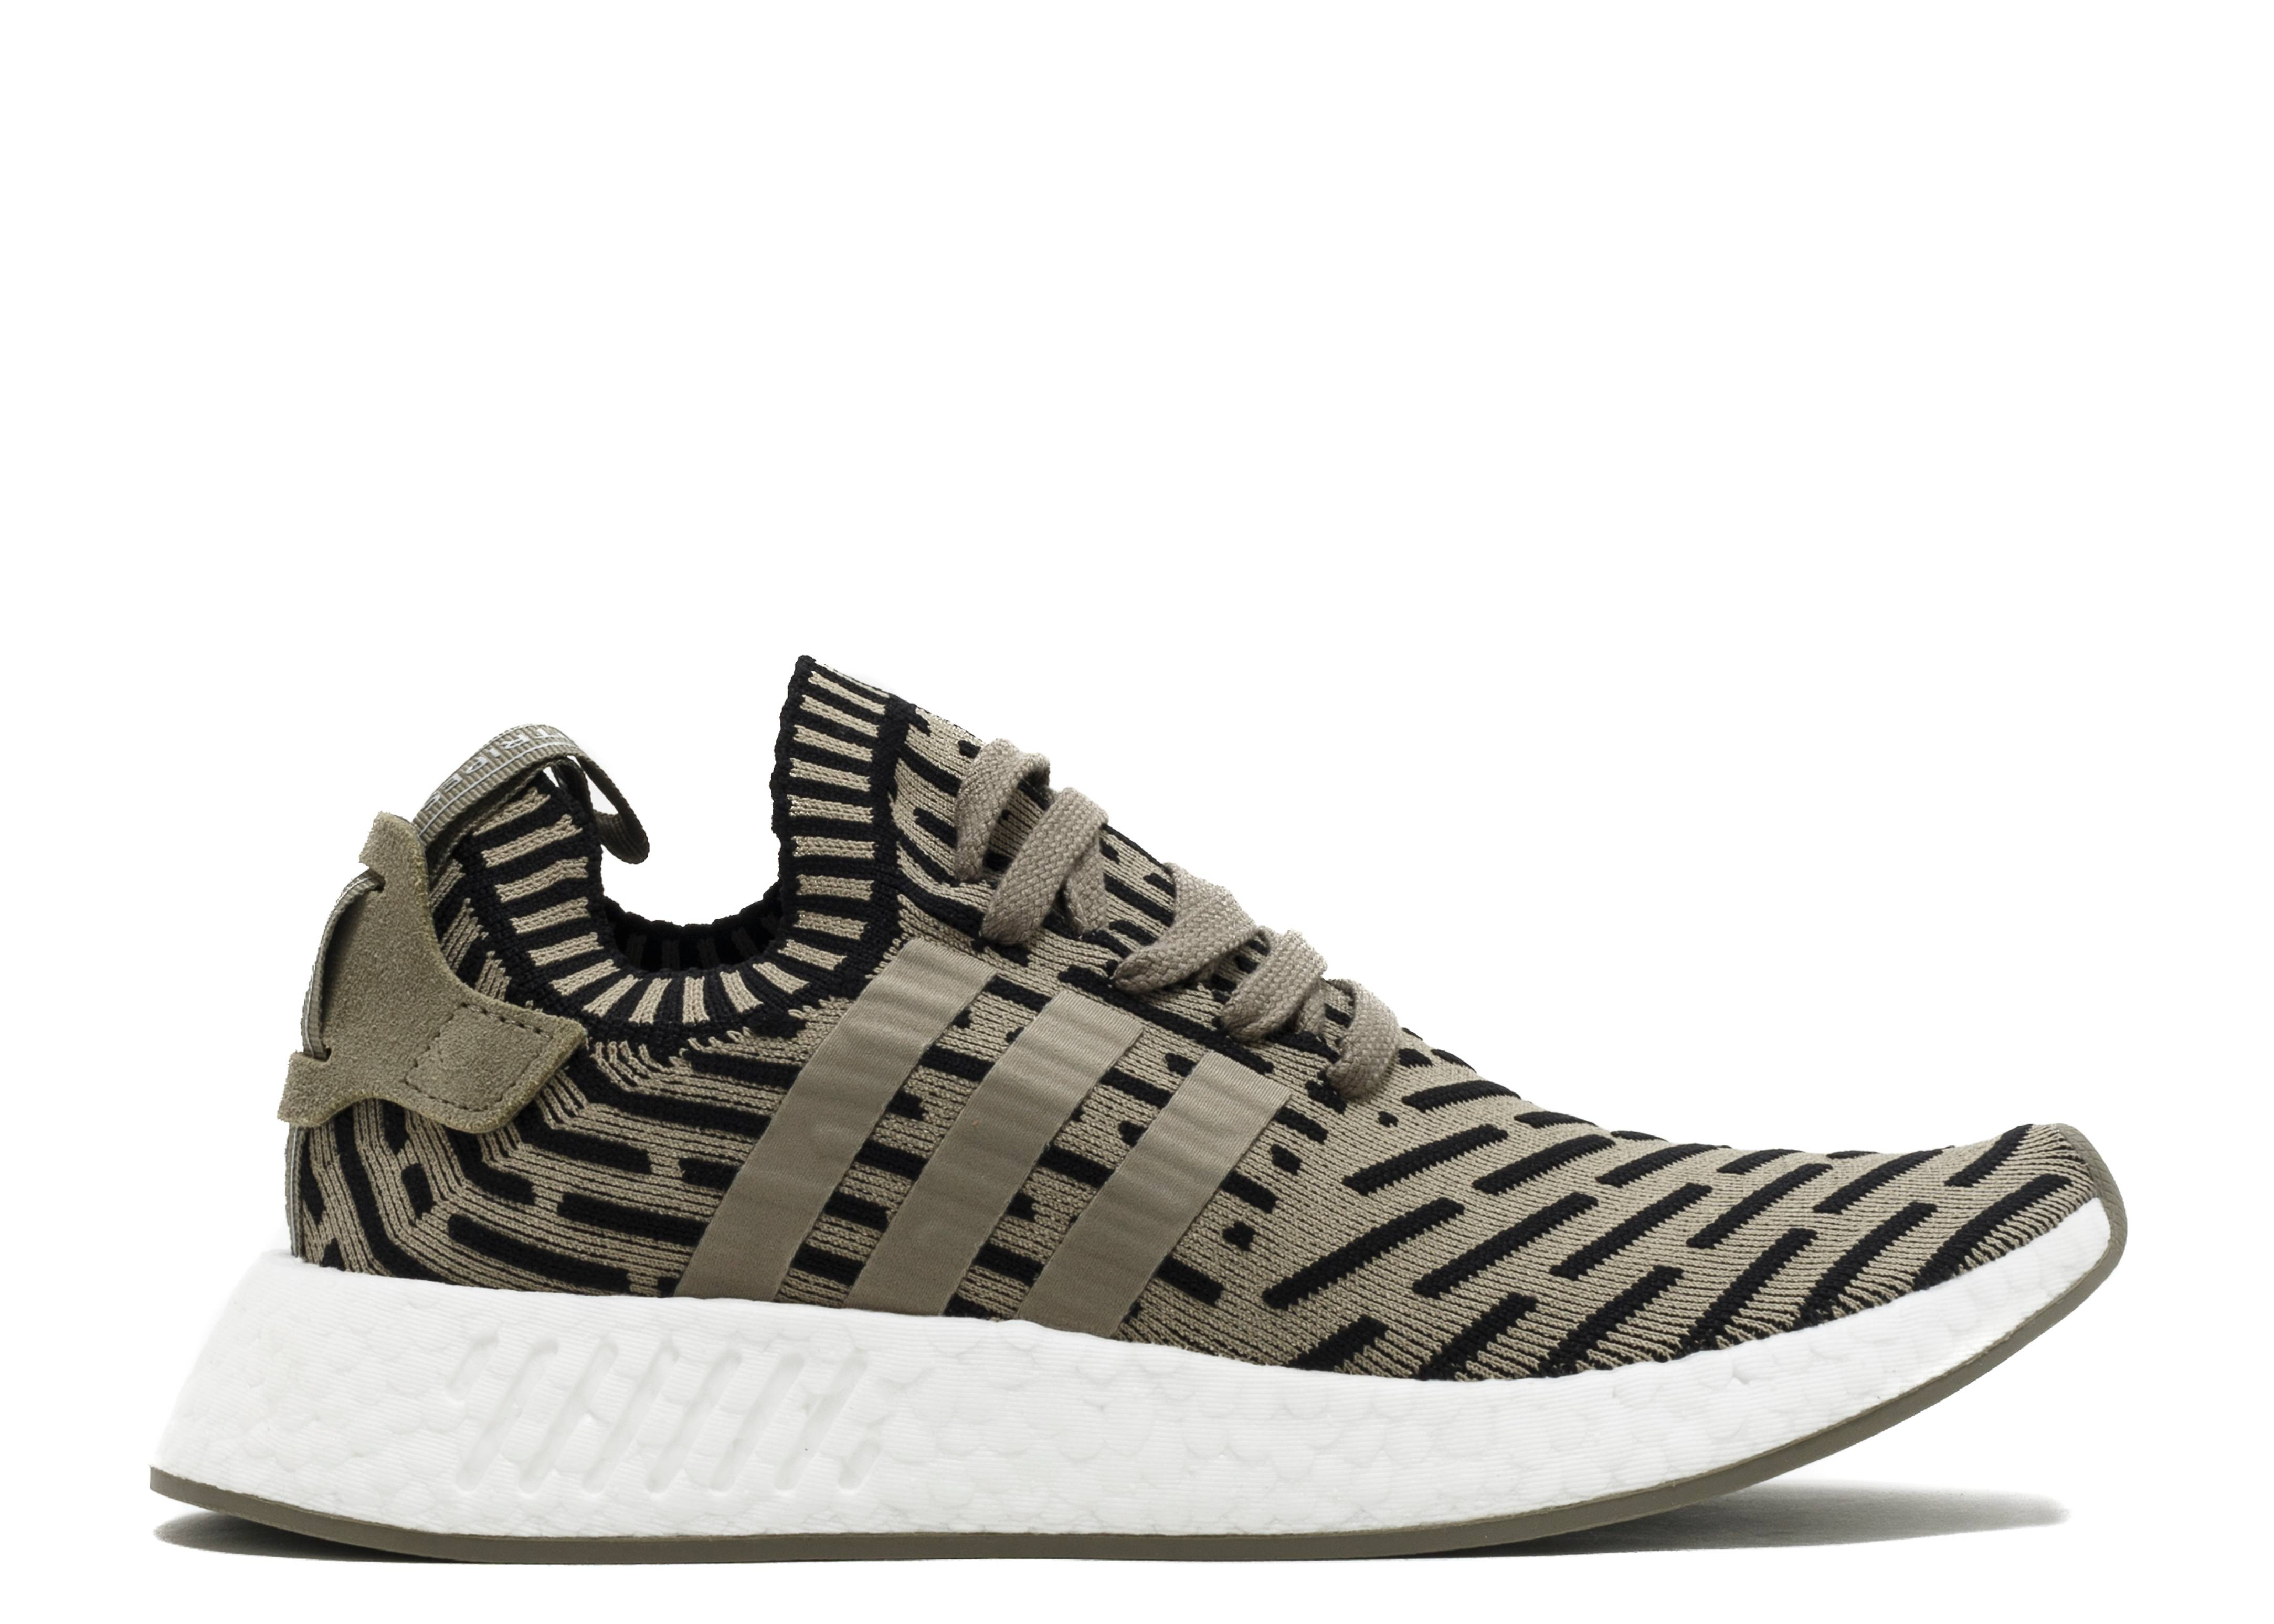 Adidas NMD R1 Runner WOMENS Salmon Pink [nmdpink] $ 119.00: